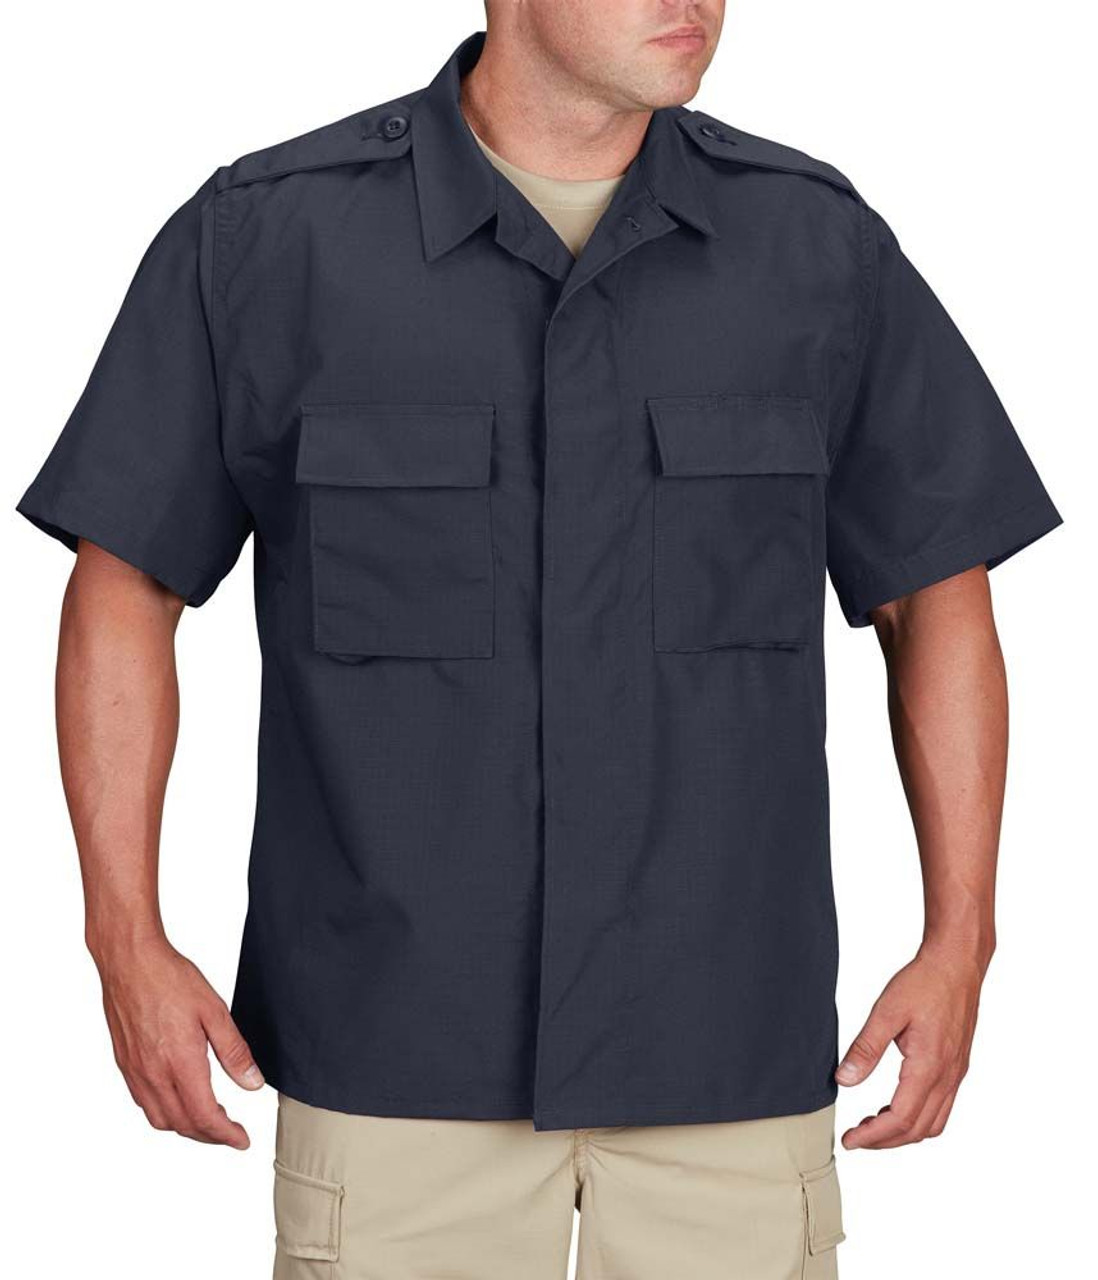 Propper® F5456 BDU Tactical Uniform Button-Down Short Sleeve Uniform Shirt, Fade-, Shrink- and Wrinkle-Resistant, 2 Chest Pockets With Hidden Button Flaps, Badge Tab